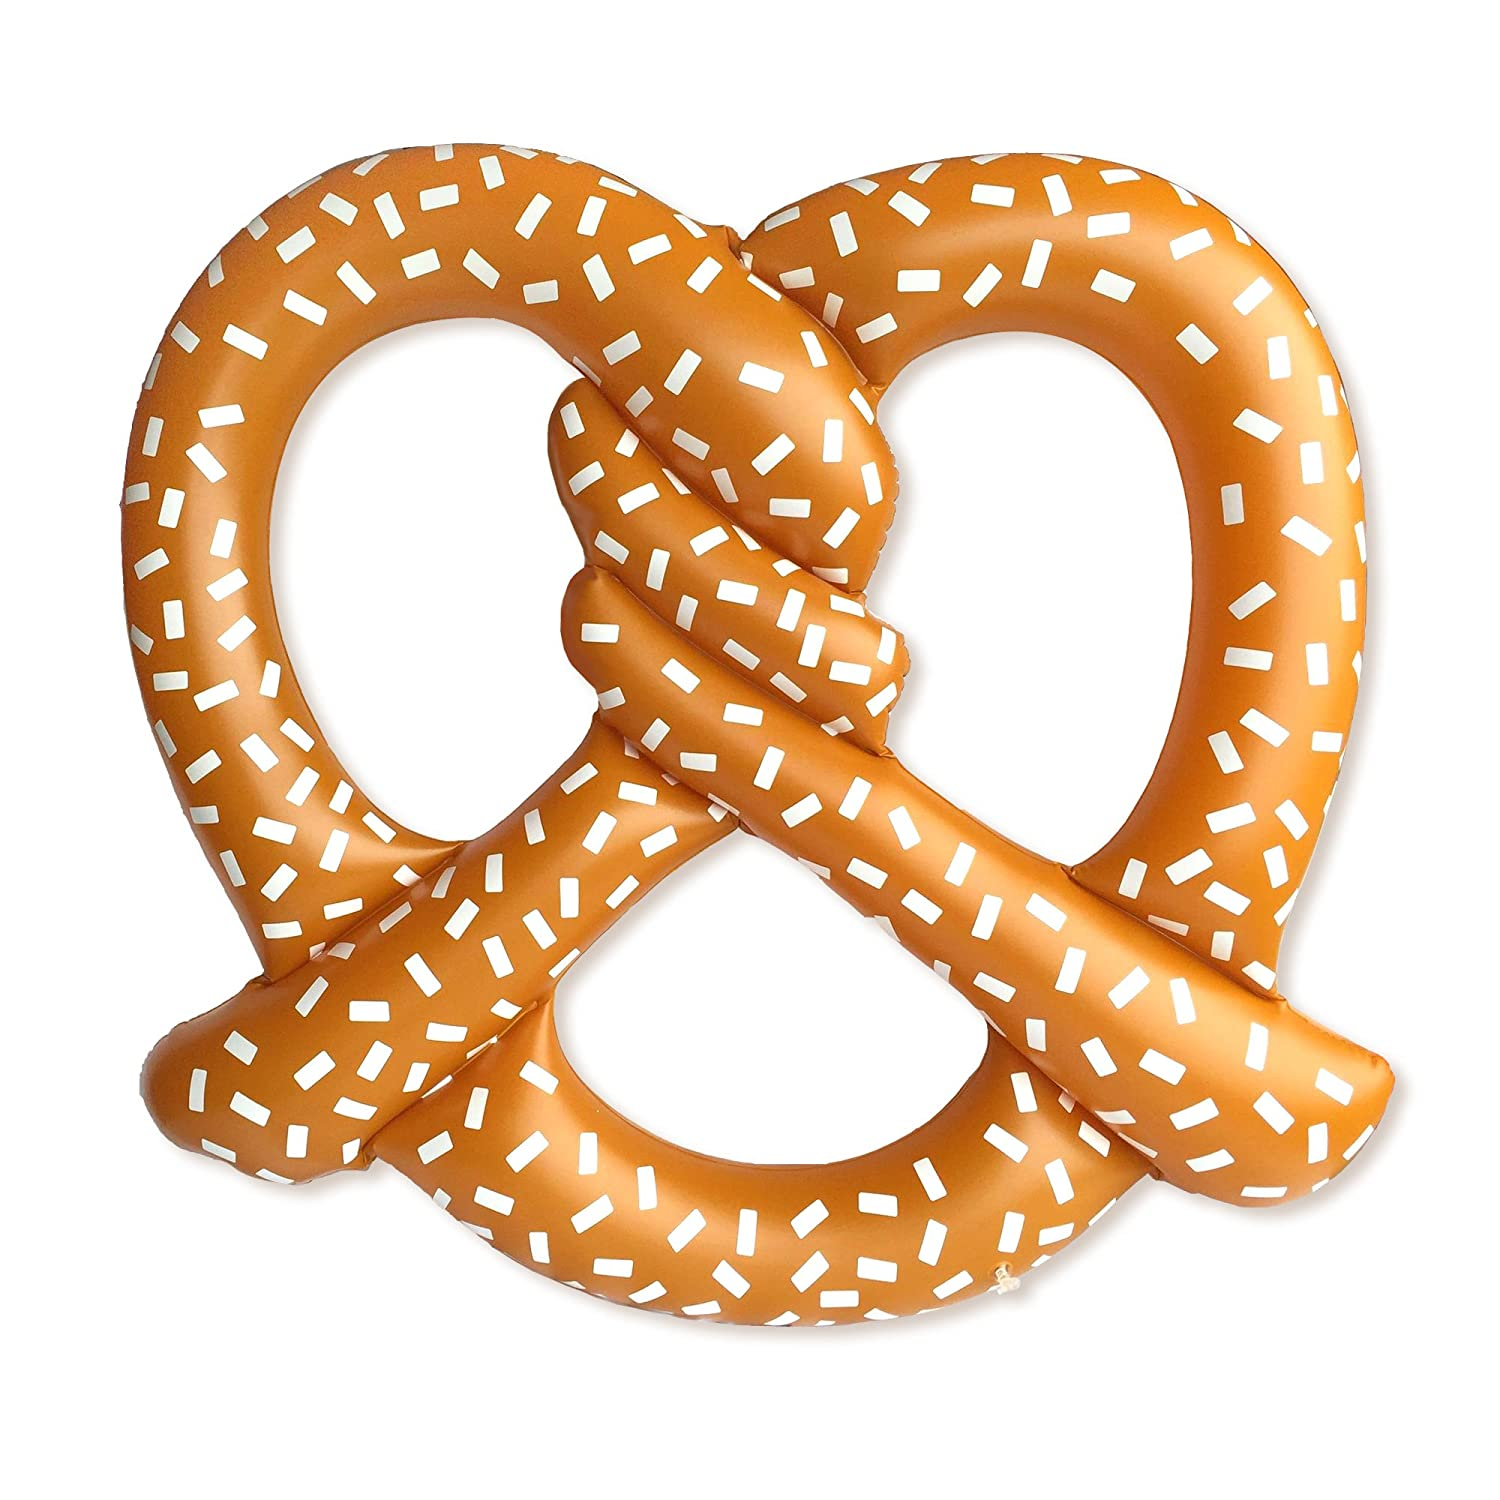 Giant Inflatable Pretzel Pool Float - Summer Fun for The Beach or Pool, Over 5 Feet Wide! Includes Patch Kit Play Platoon